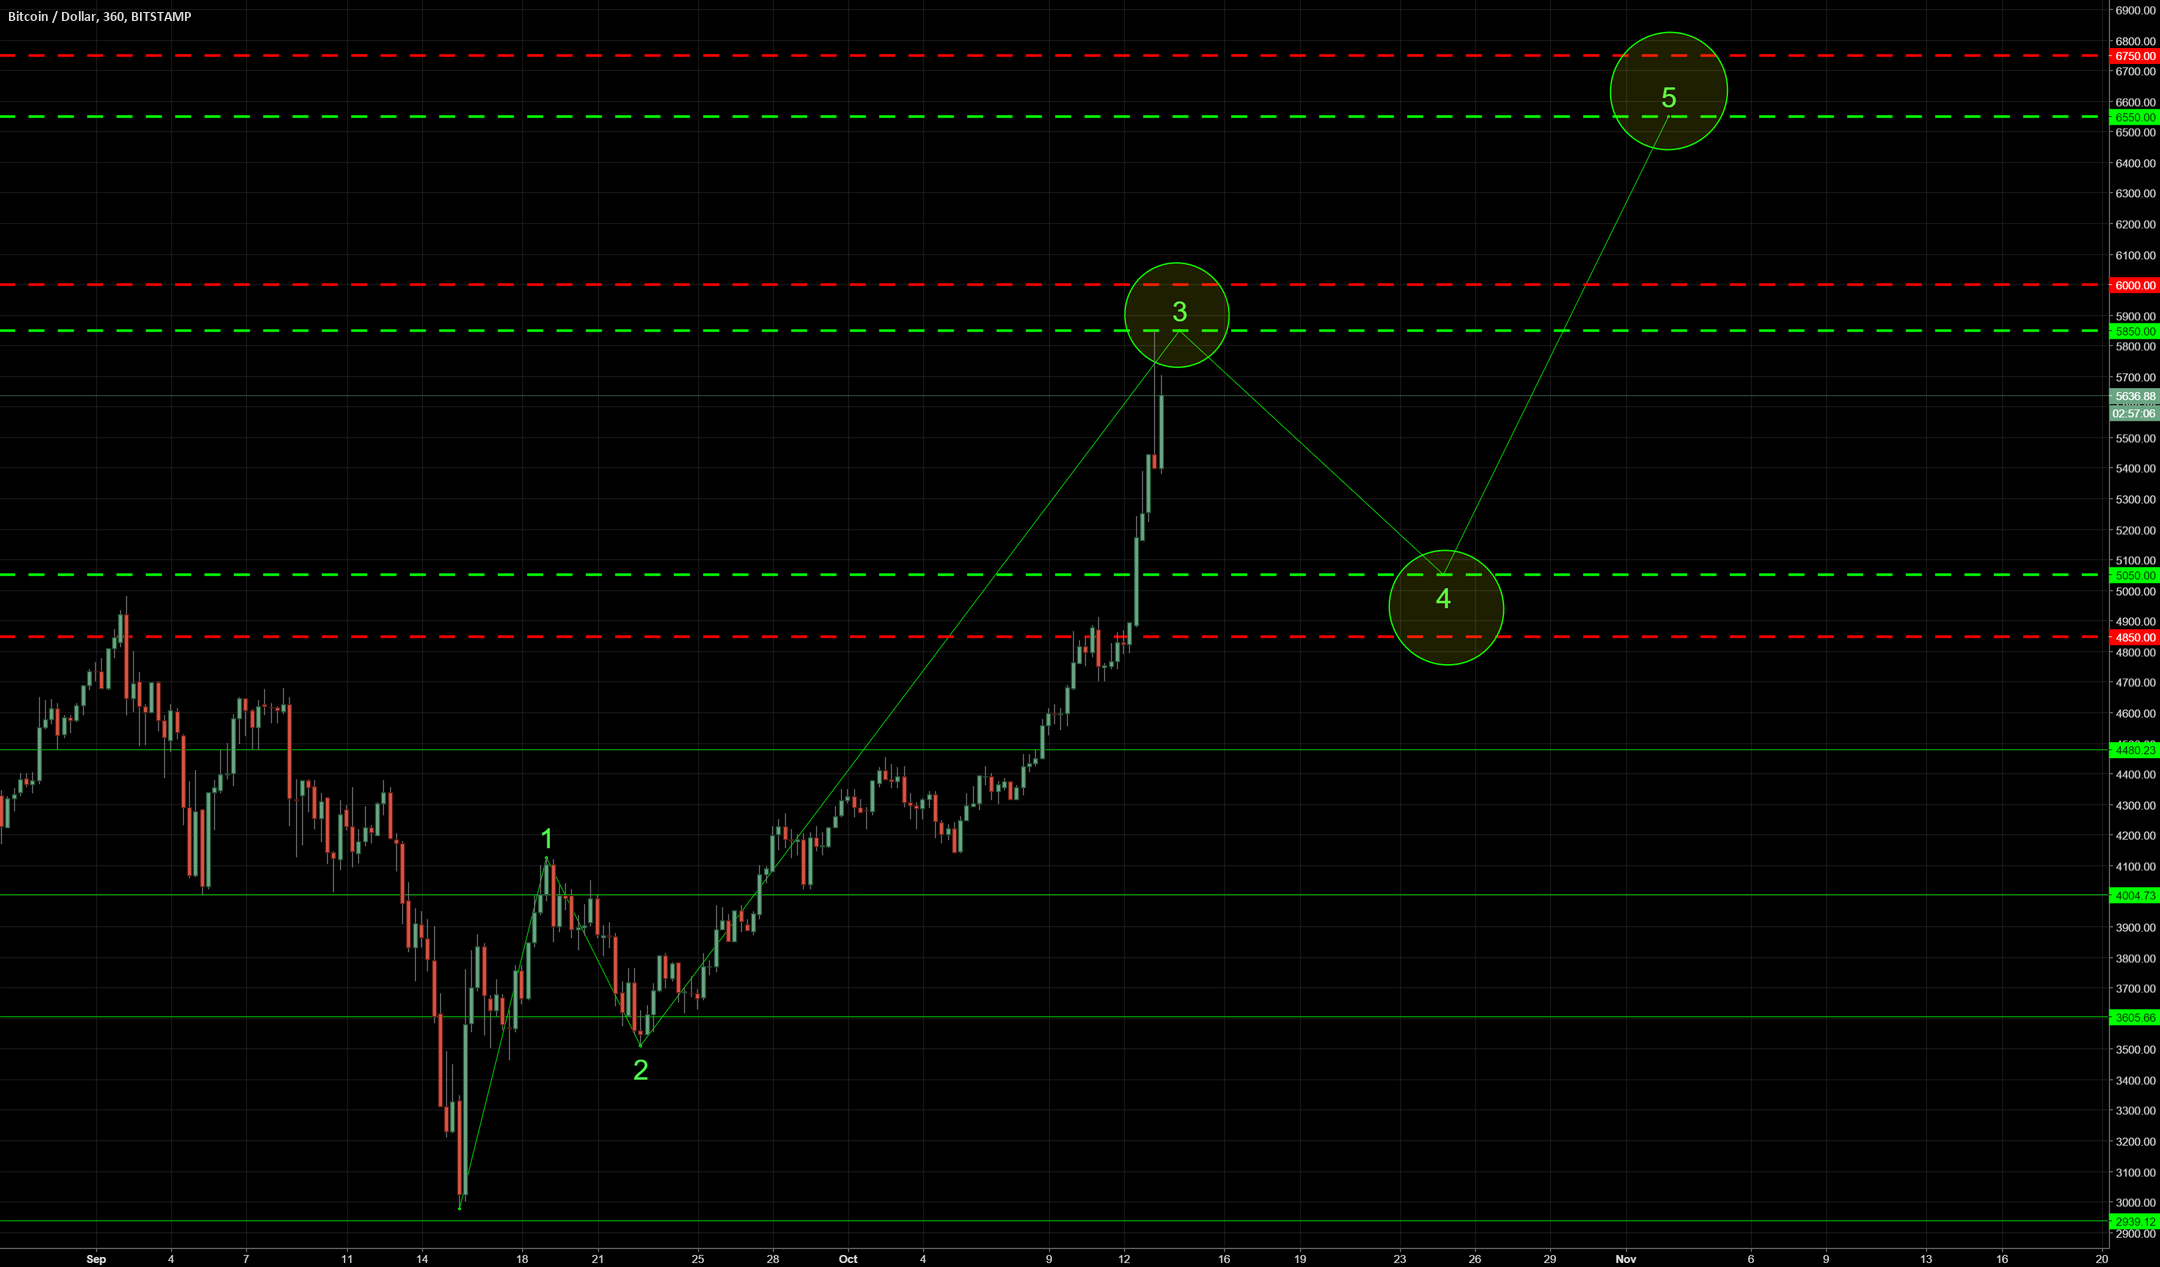 BTCUSD Bitstamp Alternative Option